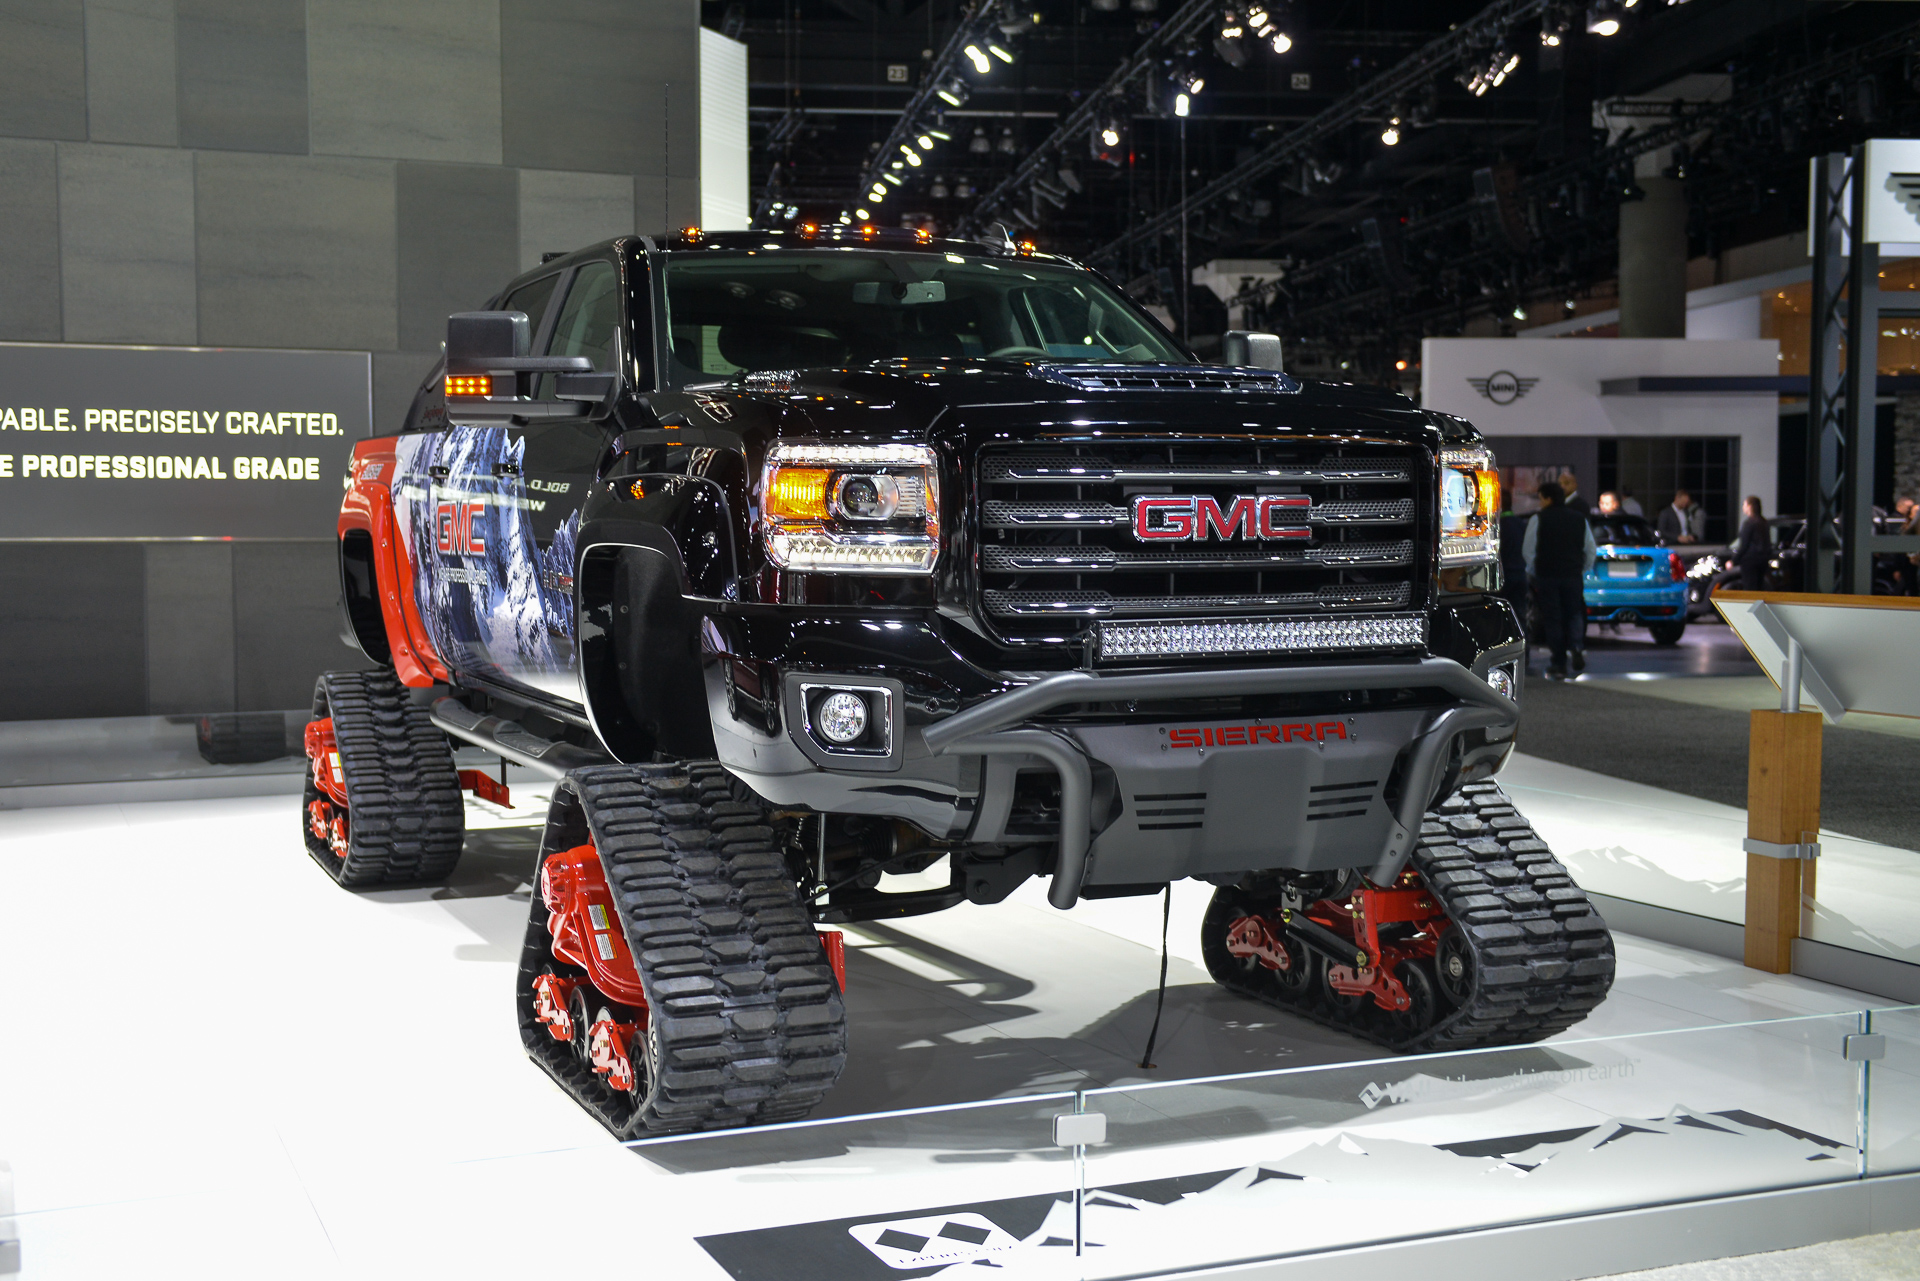 GMC is ready to conquer winter with the Sierra All ...